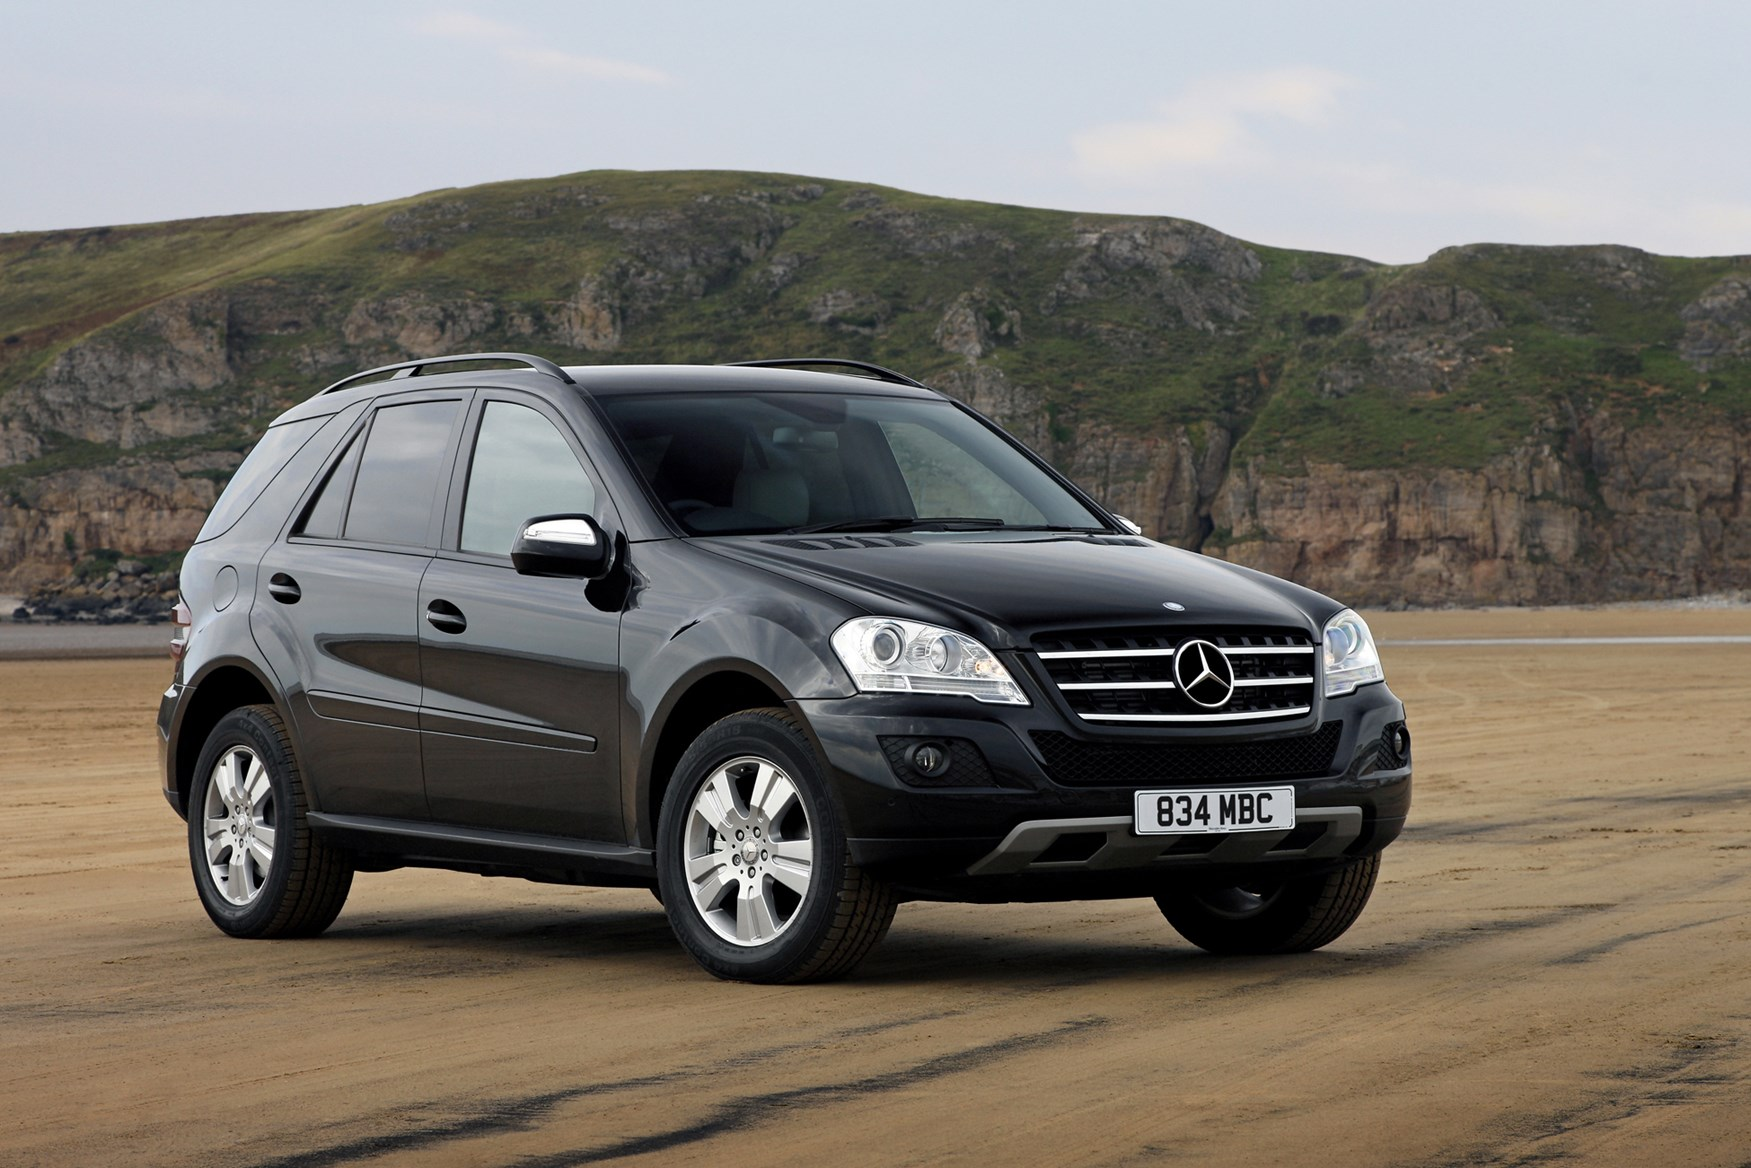 test ml mercedes road reviews review l benz suv driving with created rapha bluetec